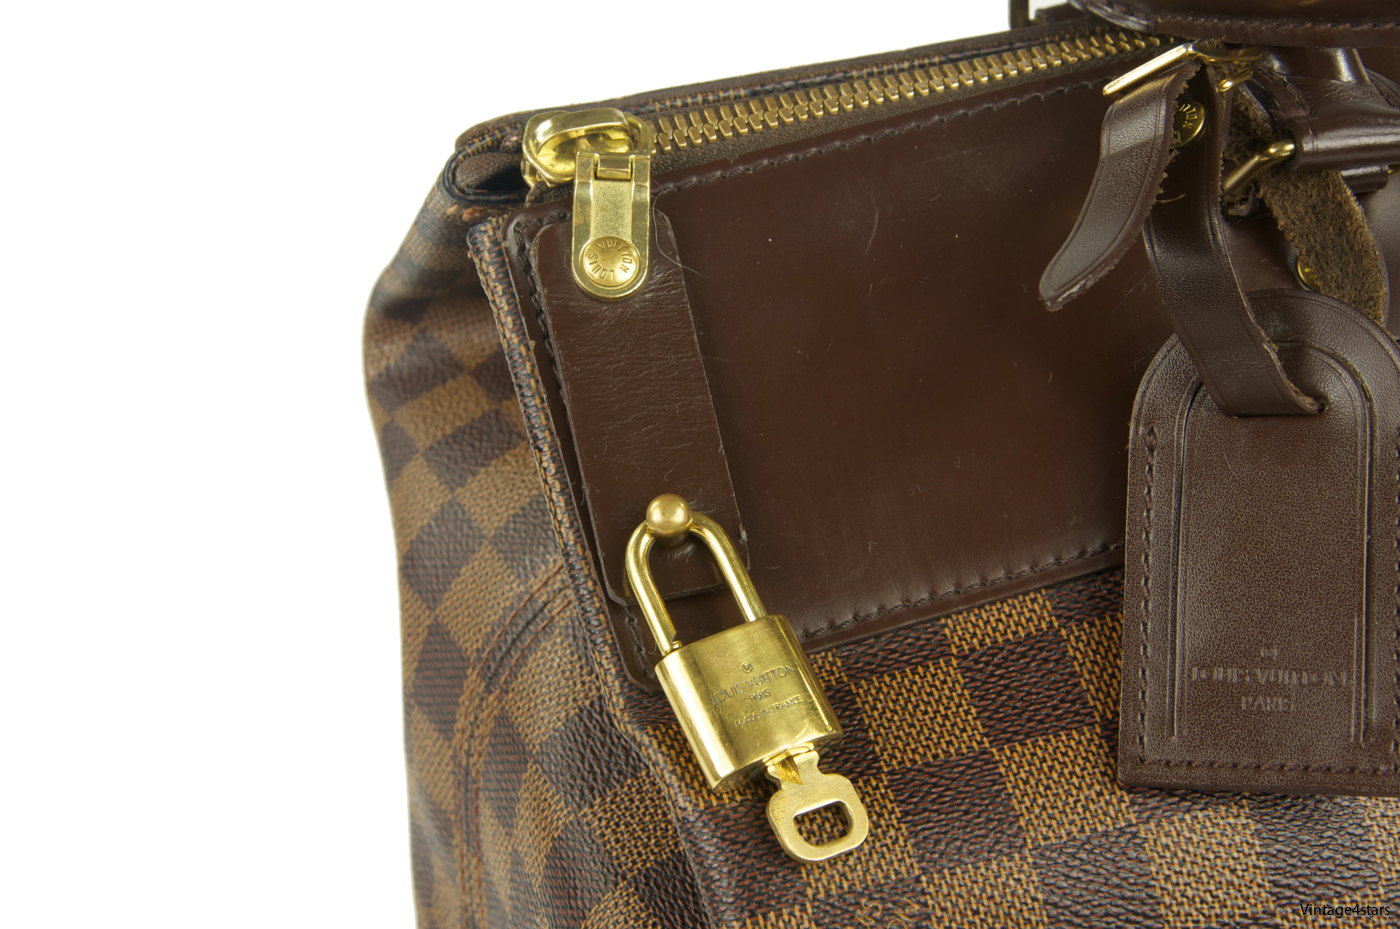 Louis Vuitton Greenwich PM 8